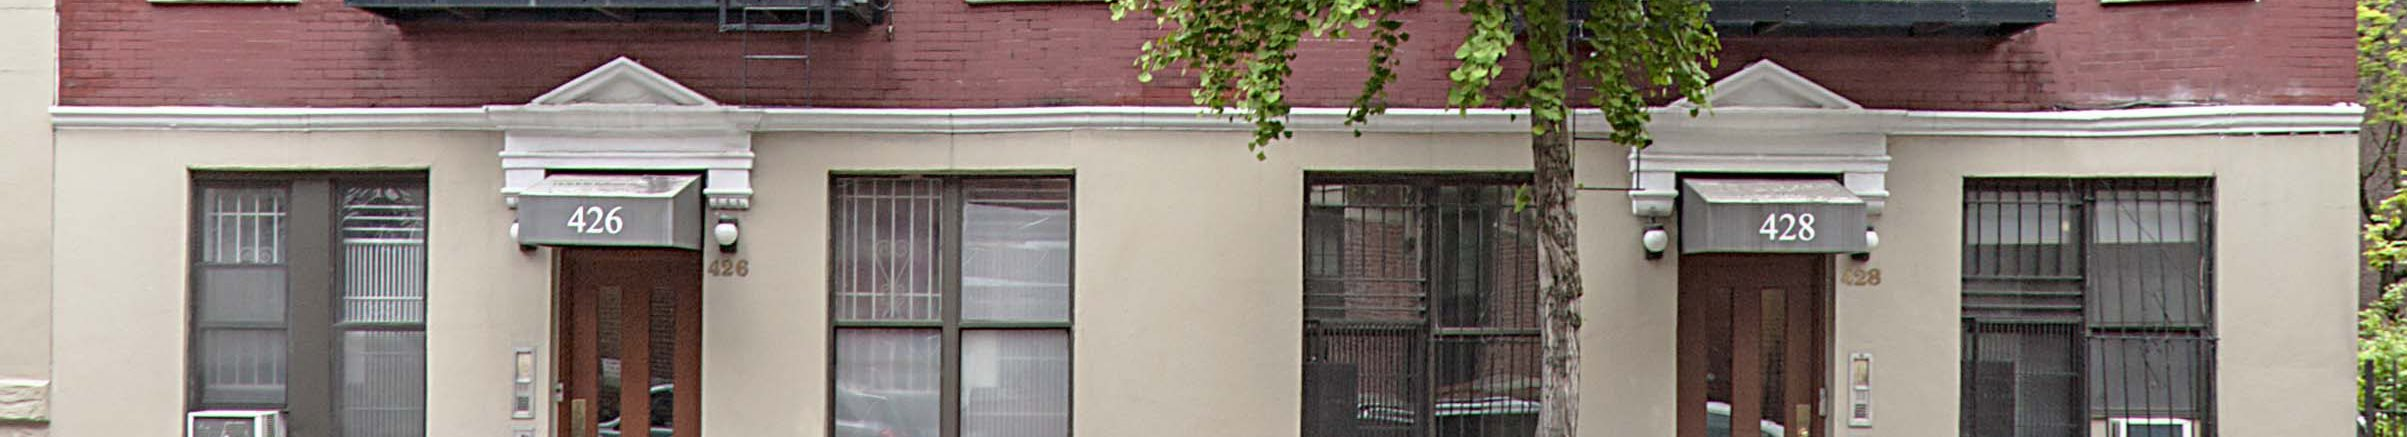 Exterior Photo of 426-428 West 48th Street, New York, NY 10036